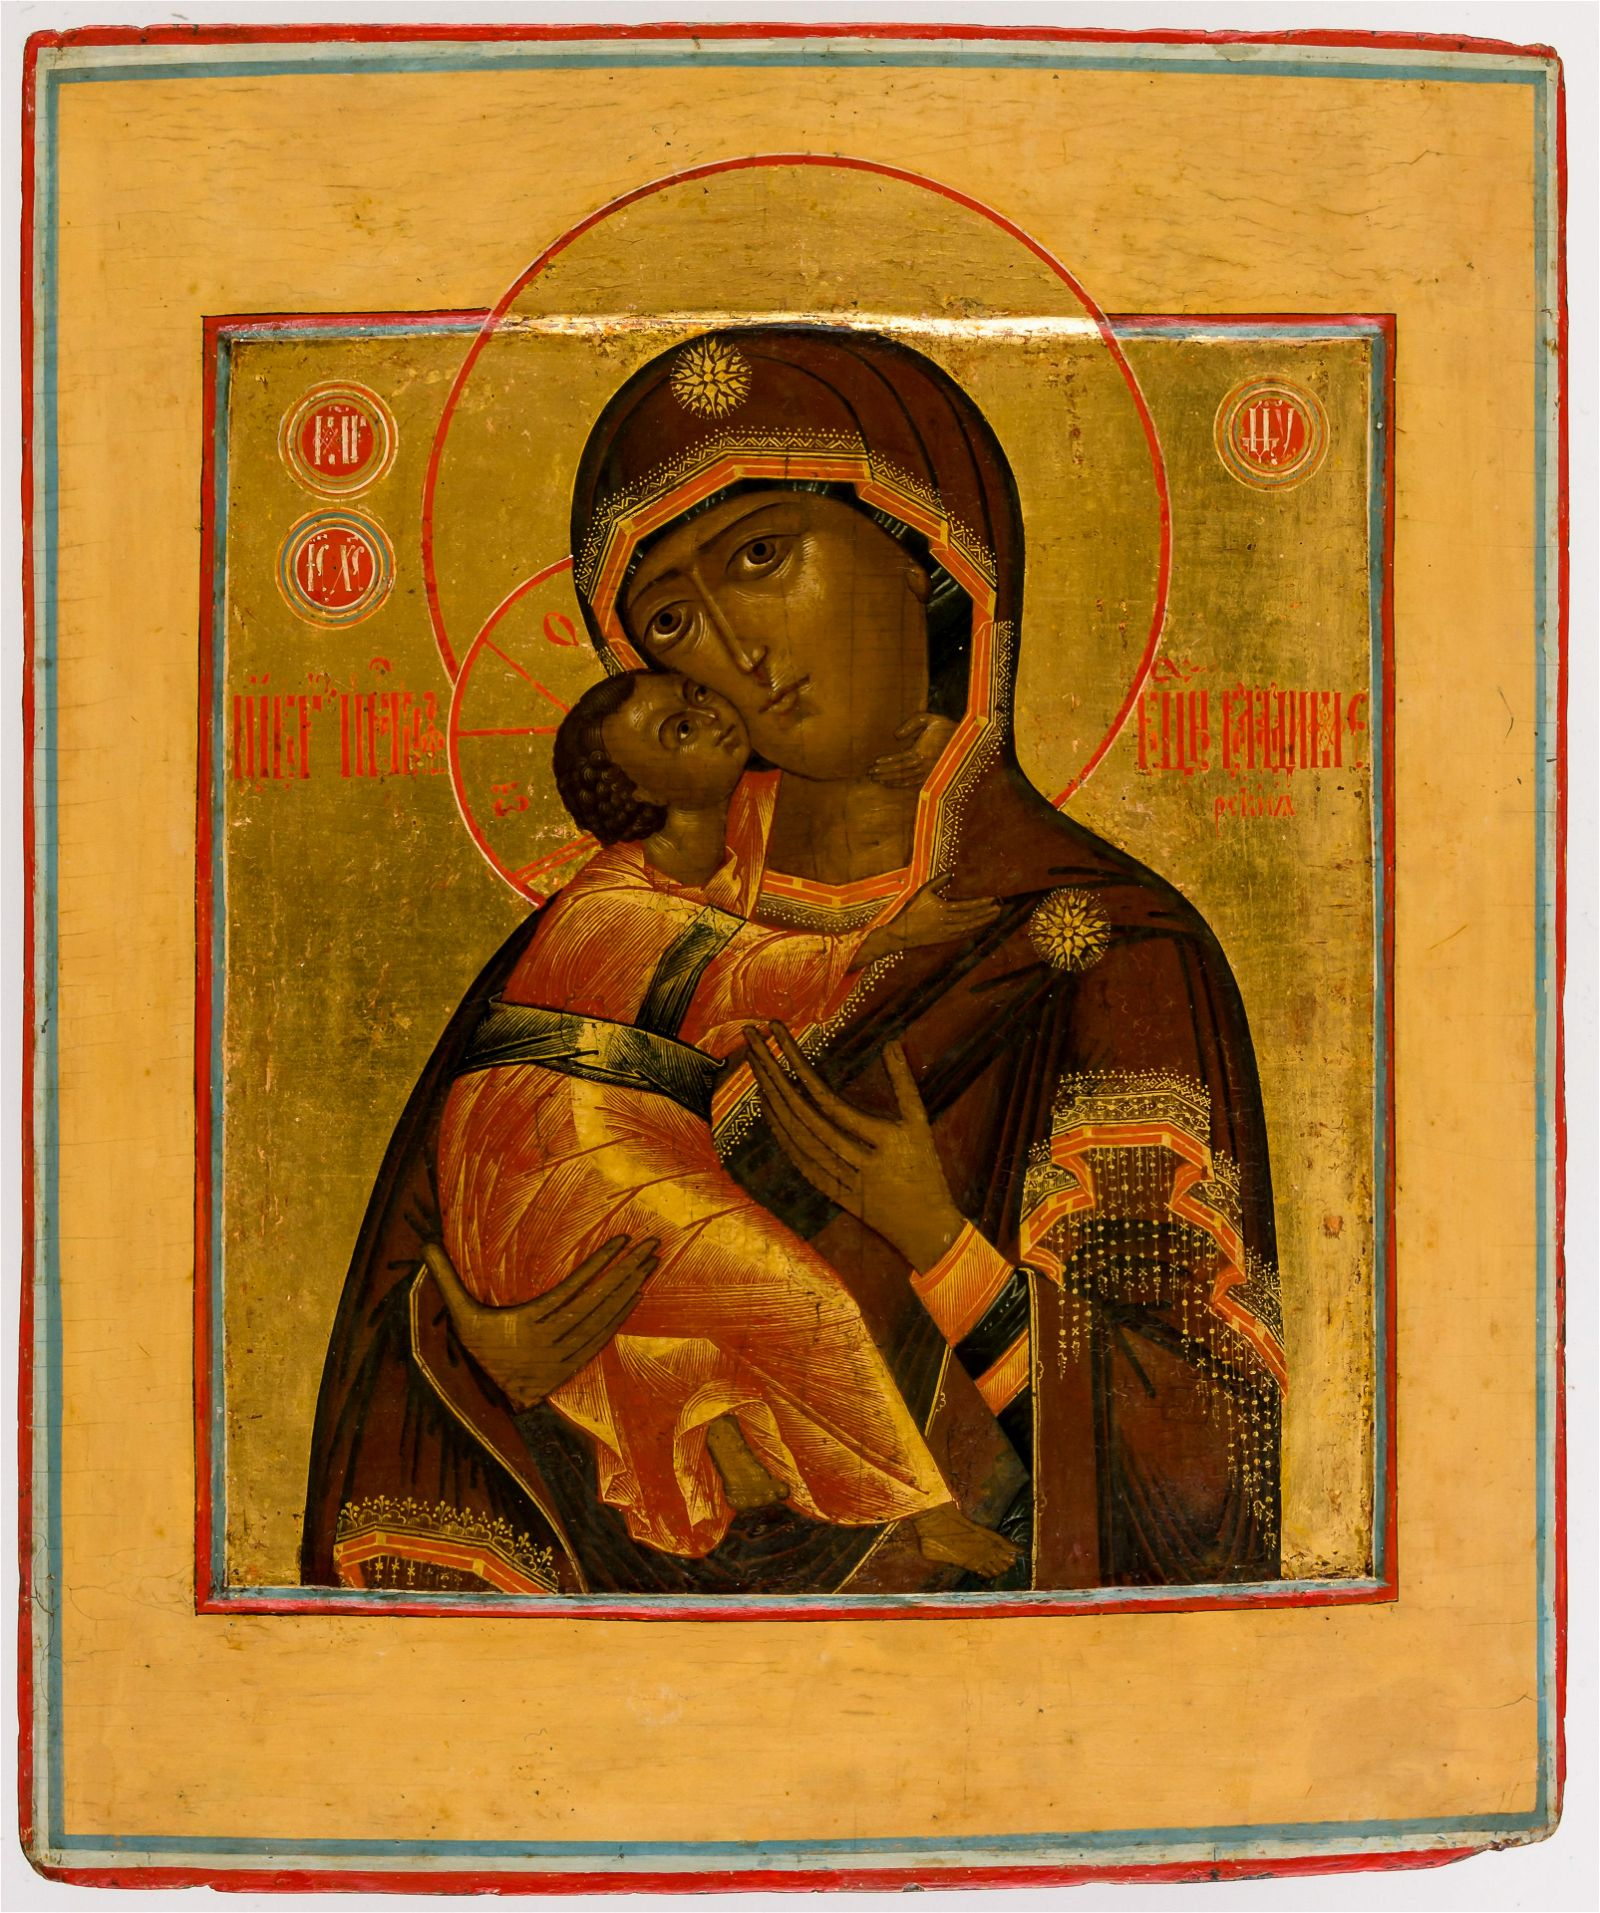 VERY FINE PAINTED ICON ON ORIGINAL GOLDGROUND SHOWING